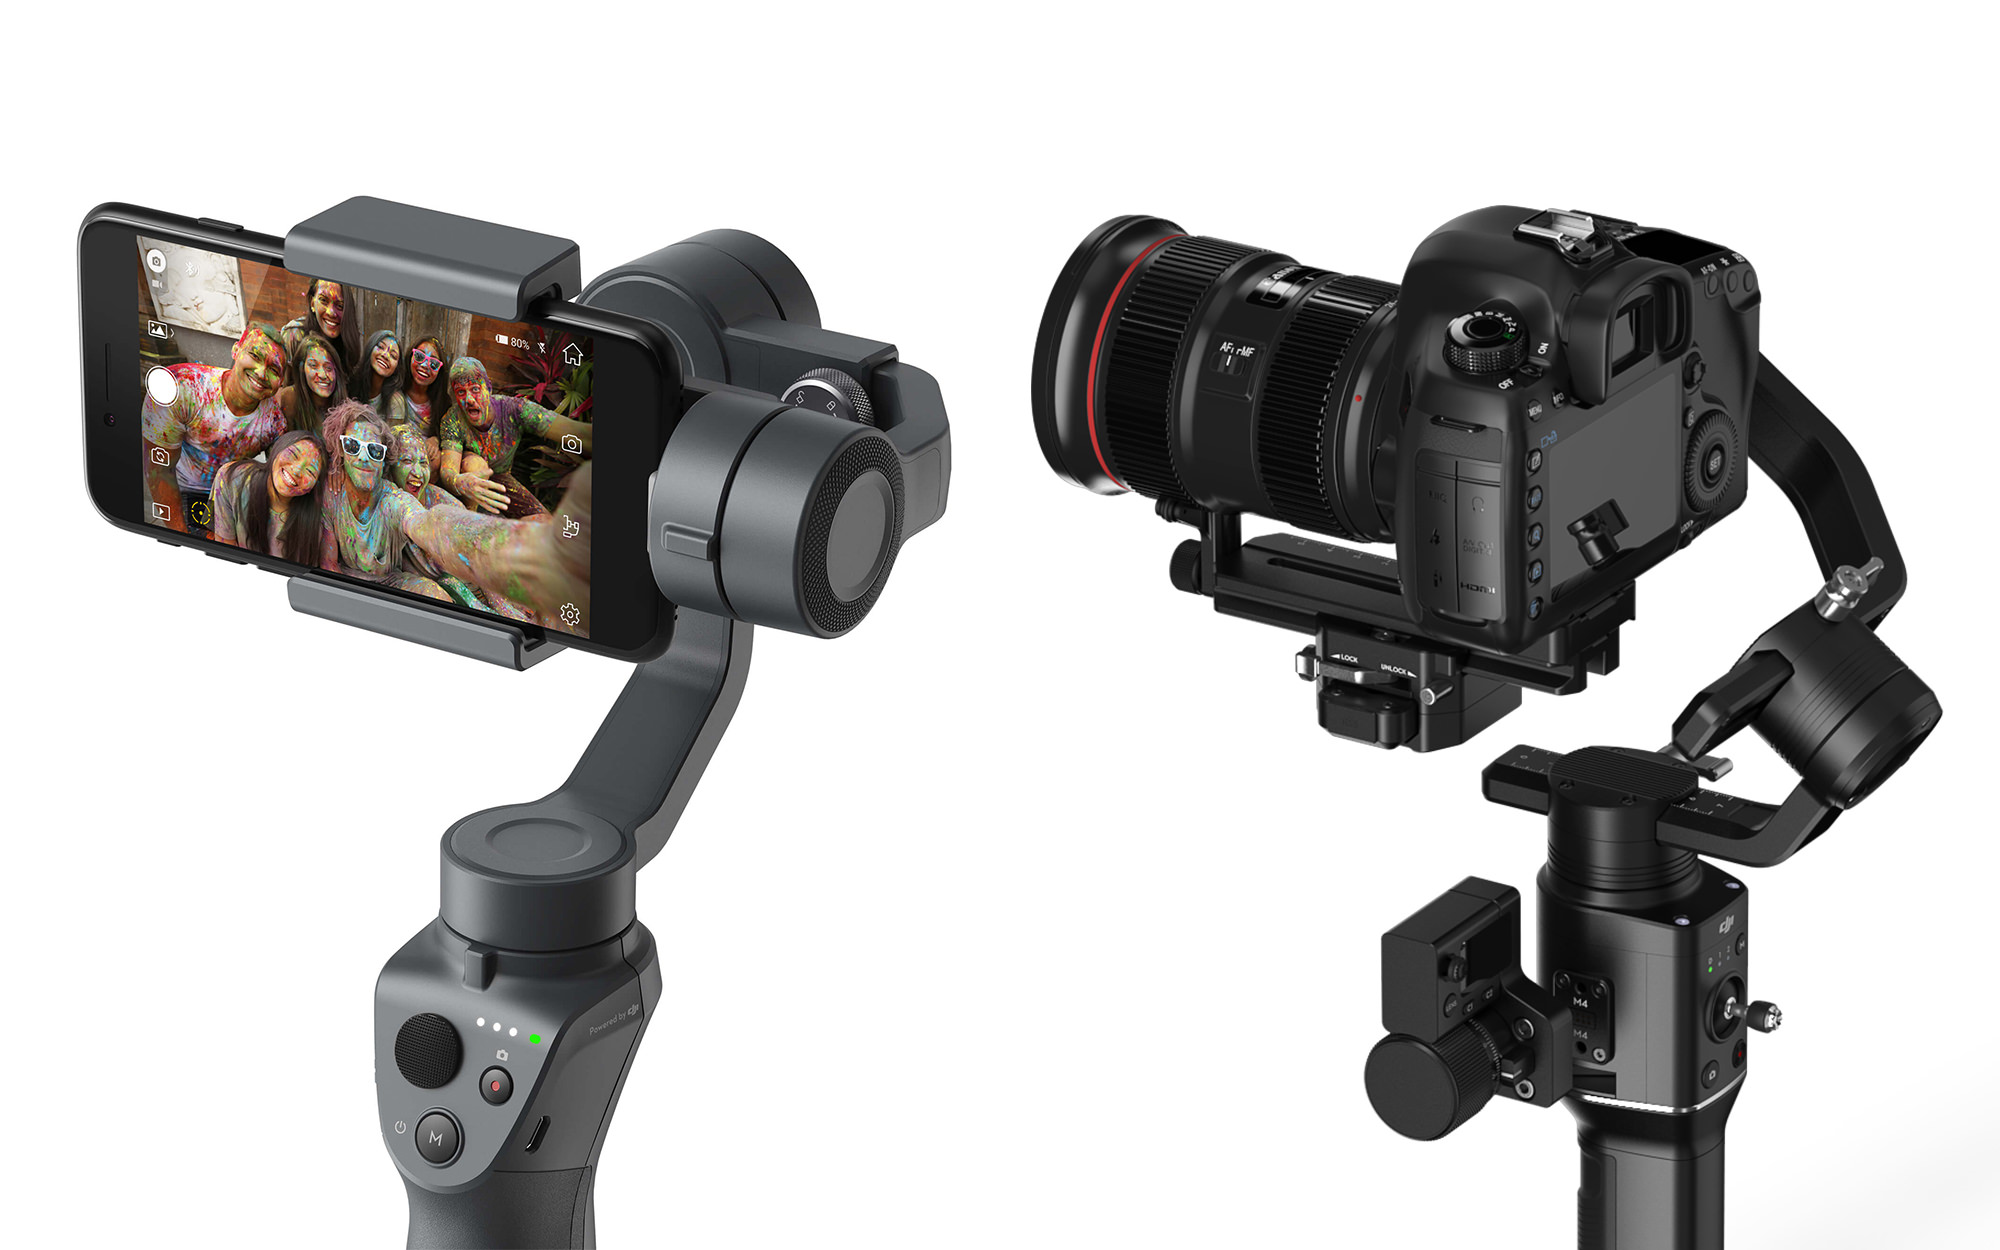 DJI Osmo Mobile 2 and Ronin S